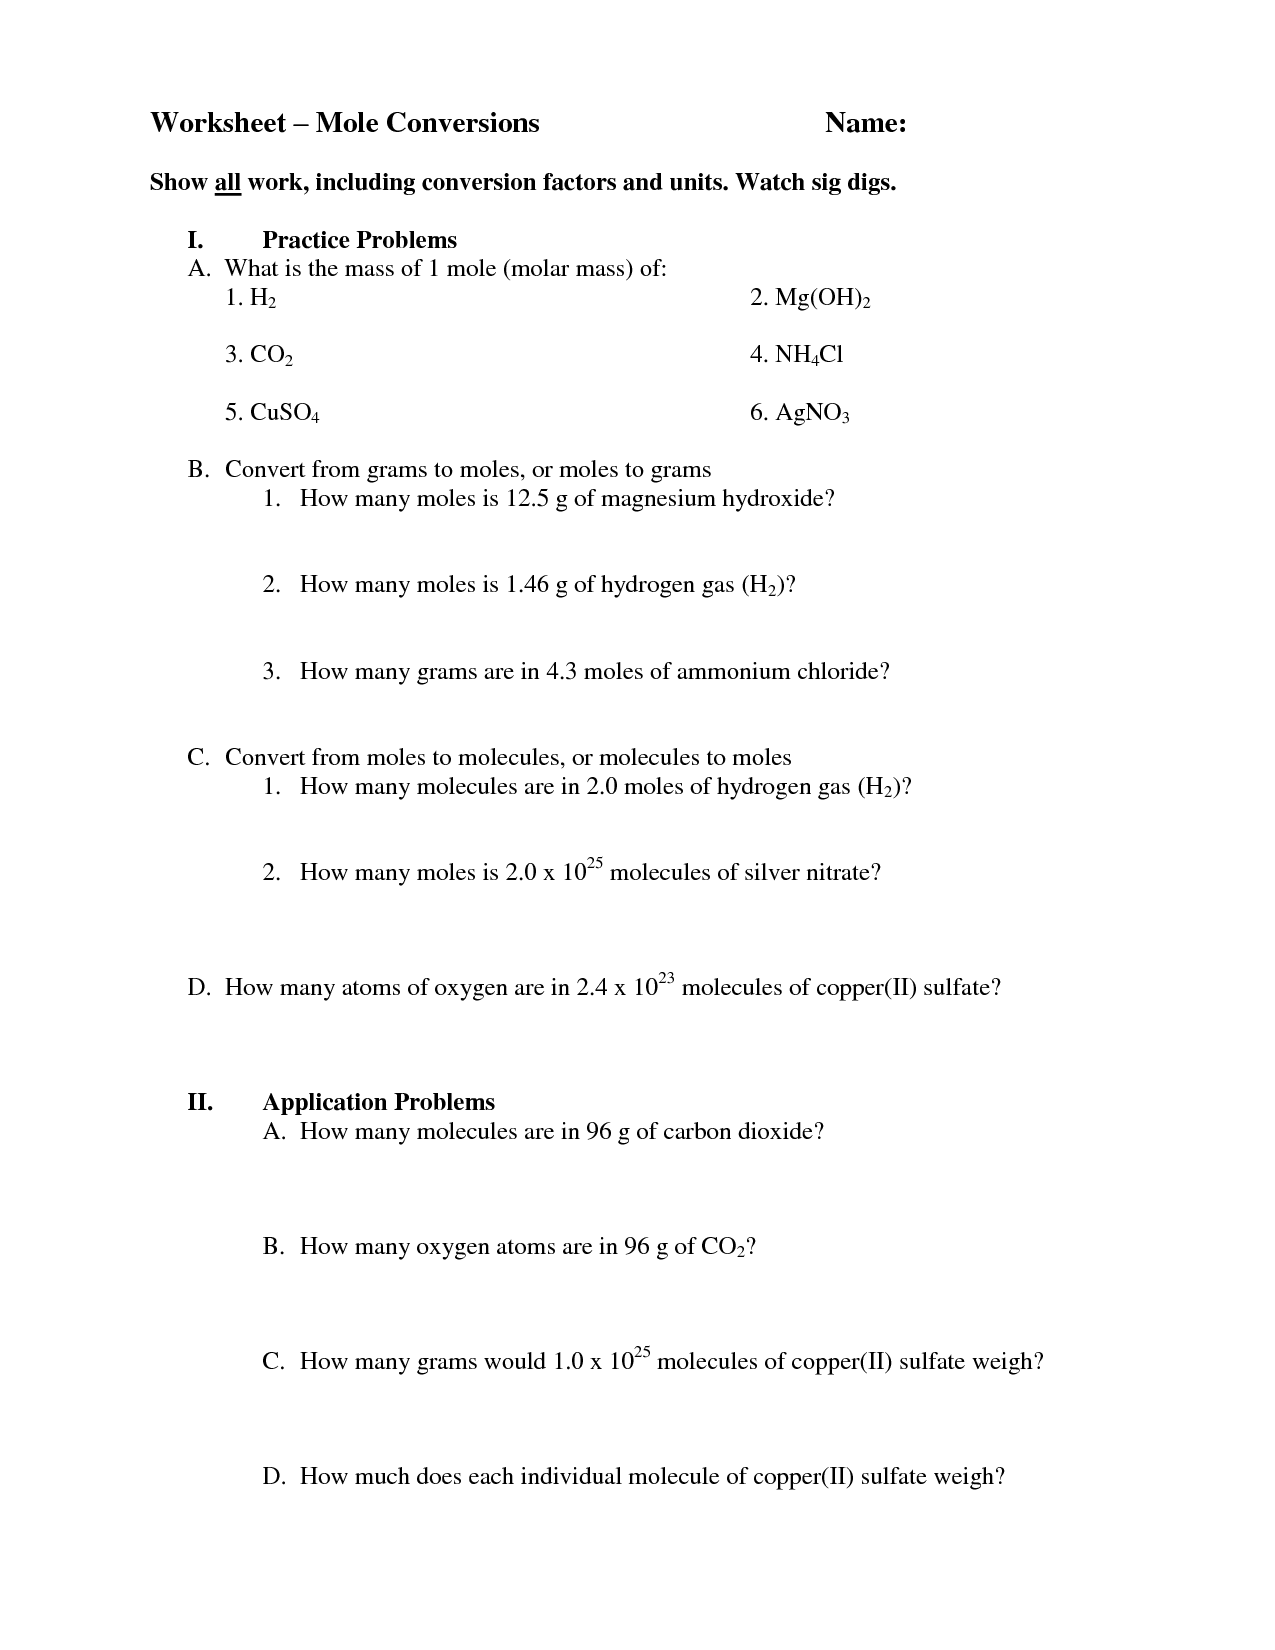 35 Molar Conversion Worksheet Answers